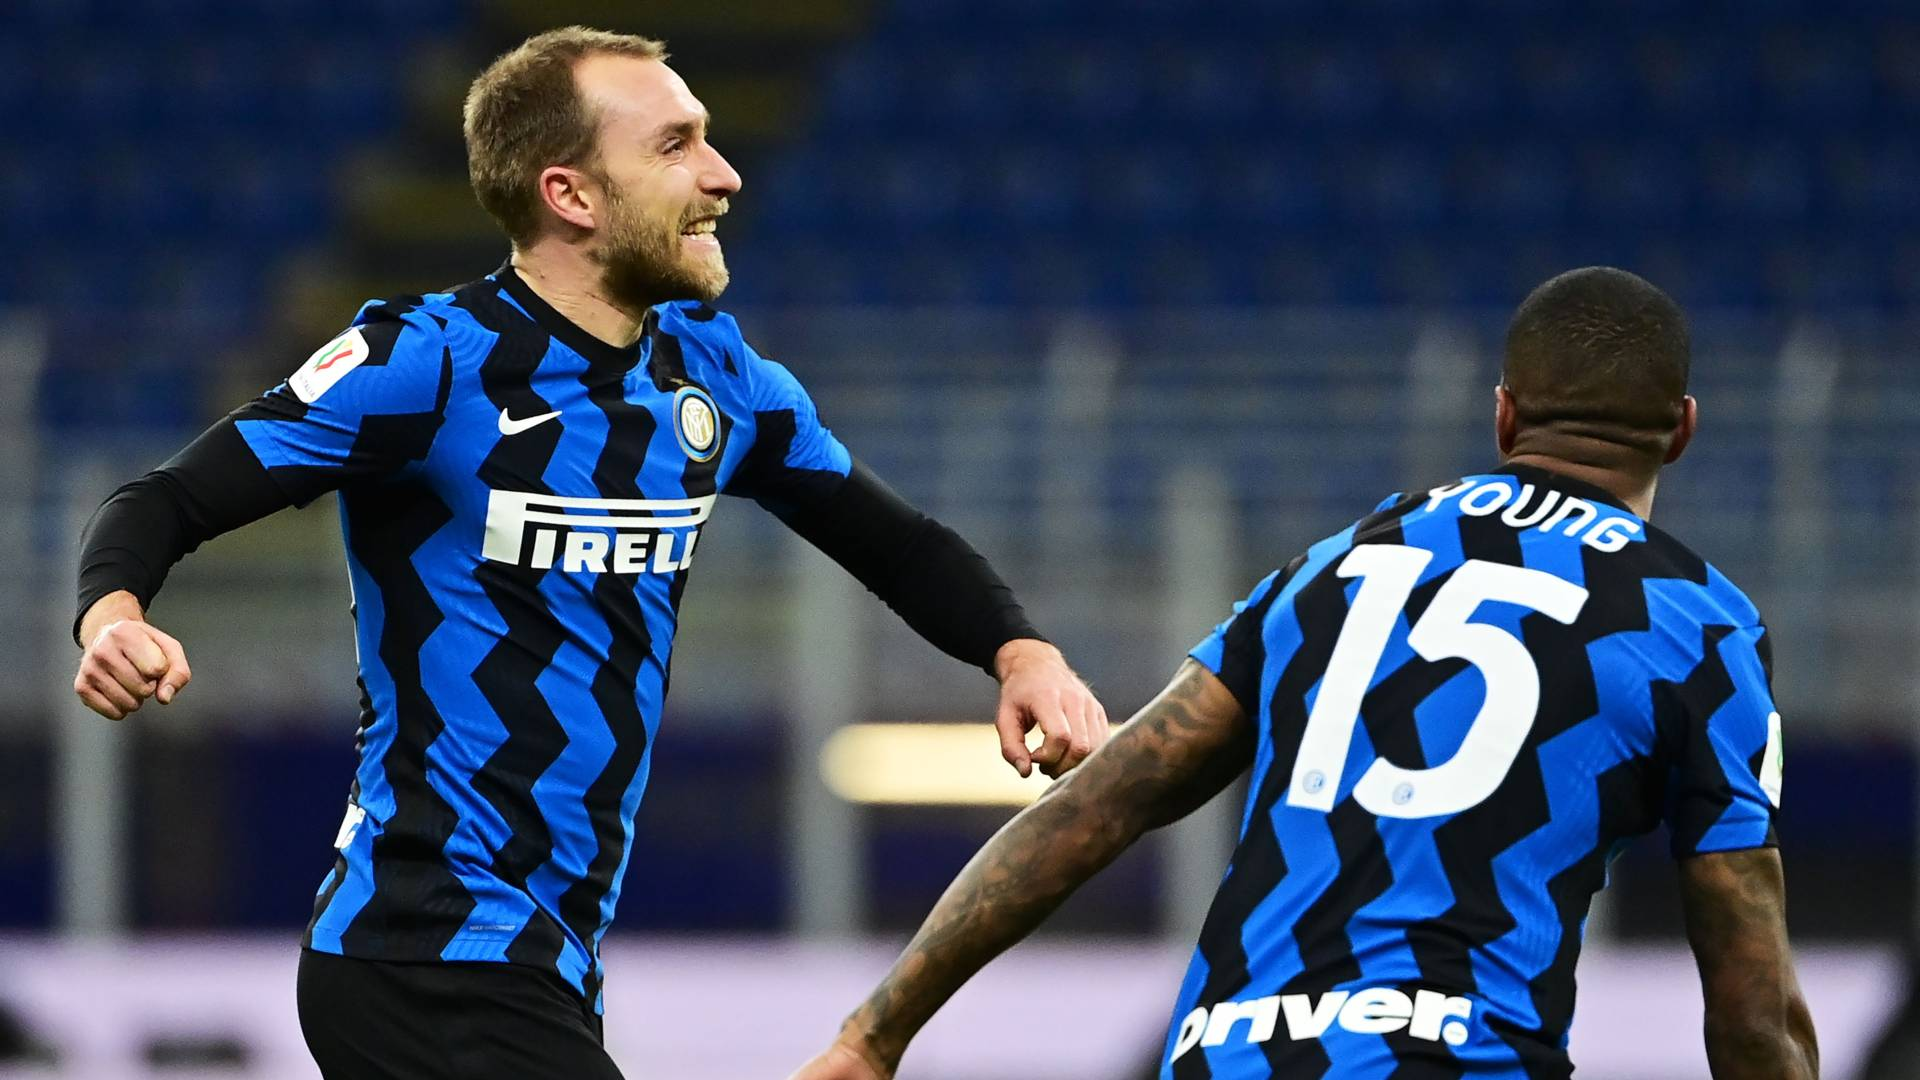 'Nobody will arrive, nobody will leave' - Conte says 'shy' Eriksen will remain at Inter after Milan derby wonder goal